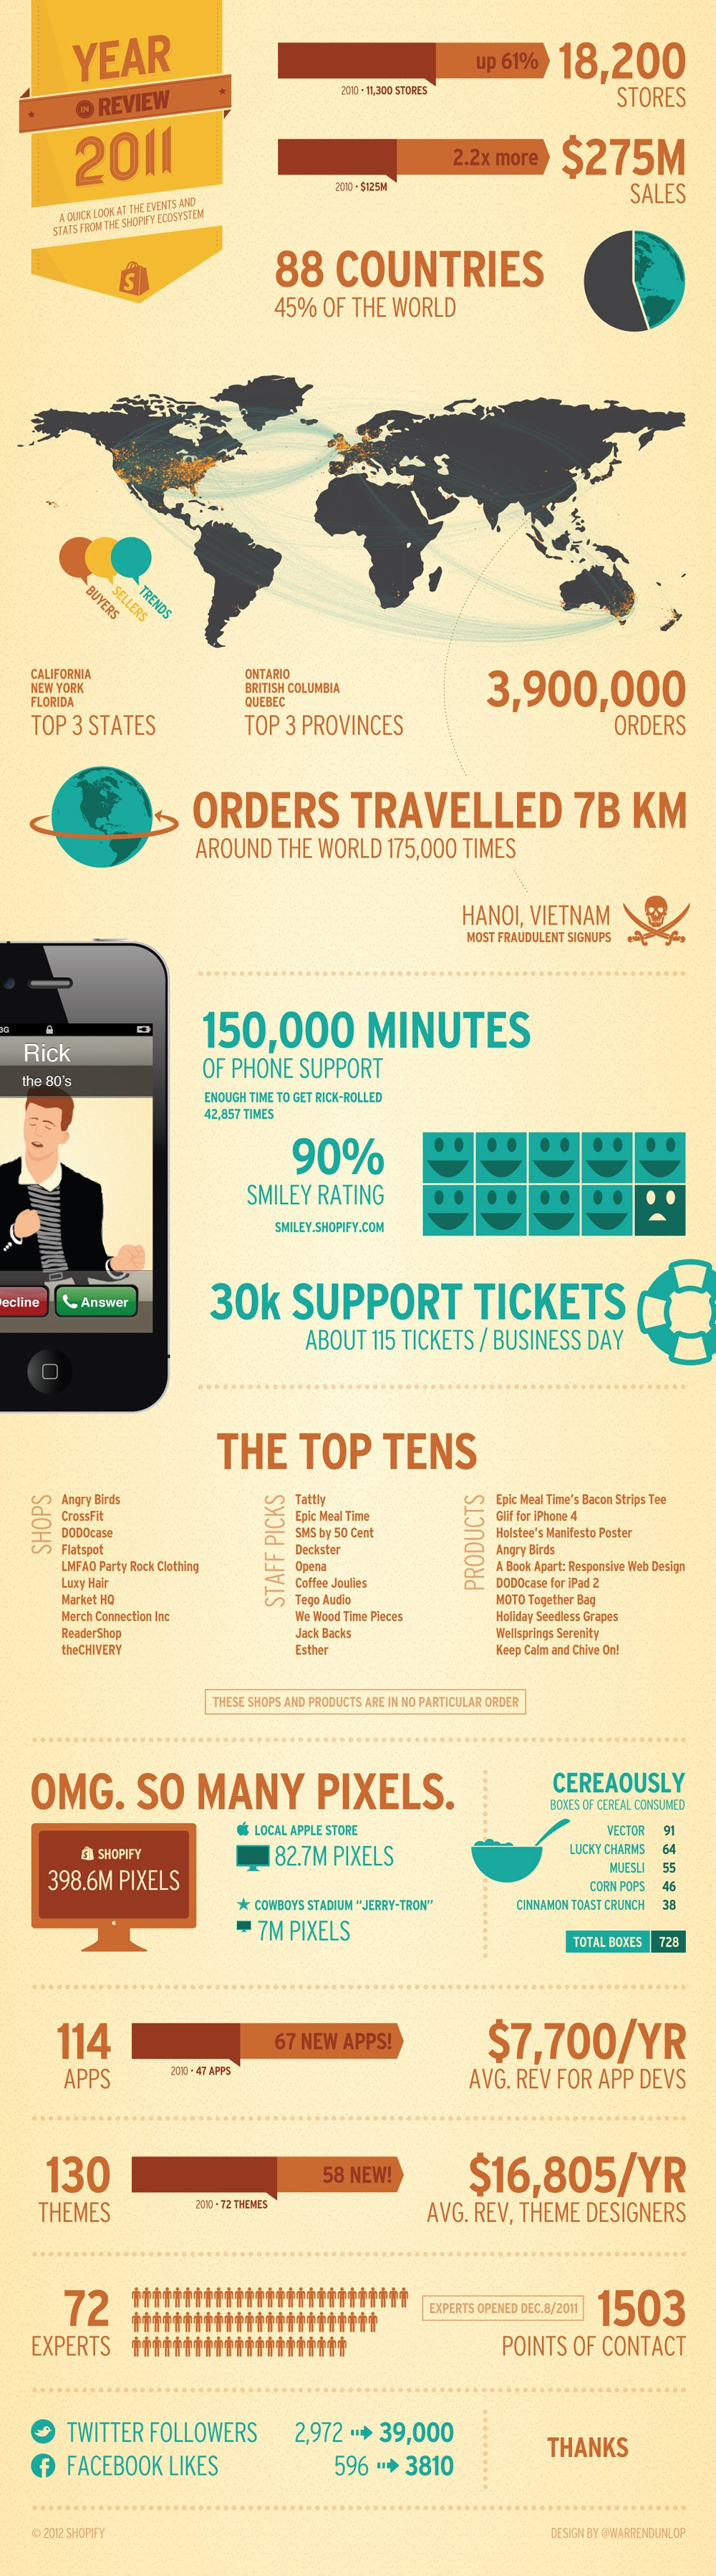 Shopify Year in Review 2011 Infographic